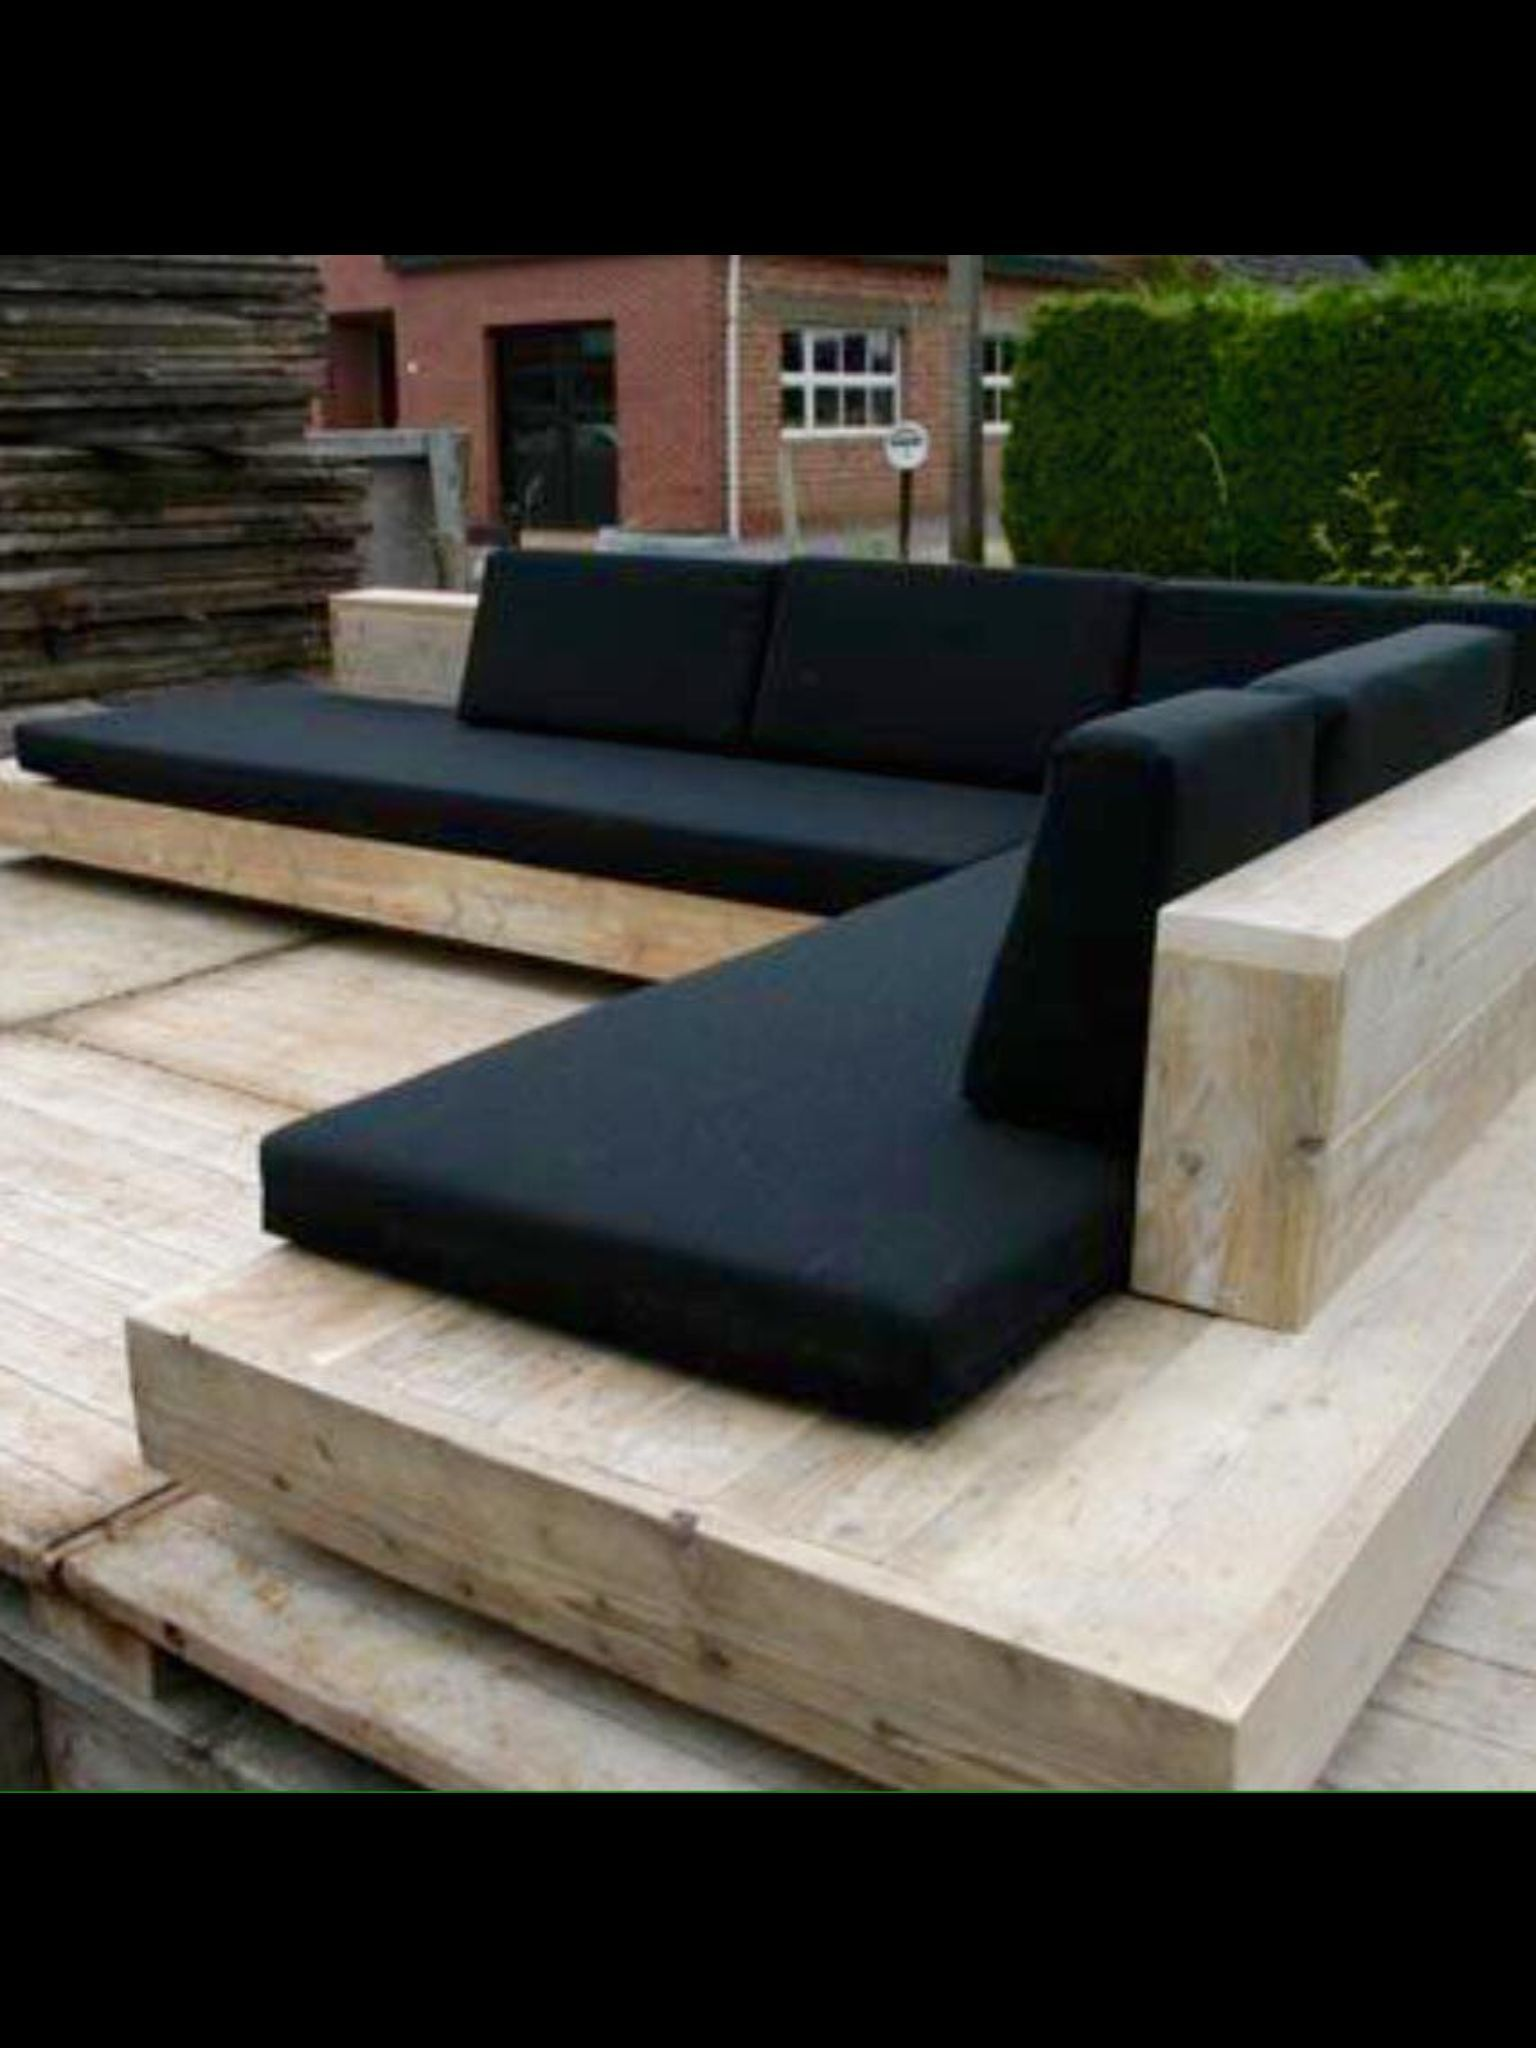 L shaped seating around fire pit outdoor sectional sofa Fire Pit